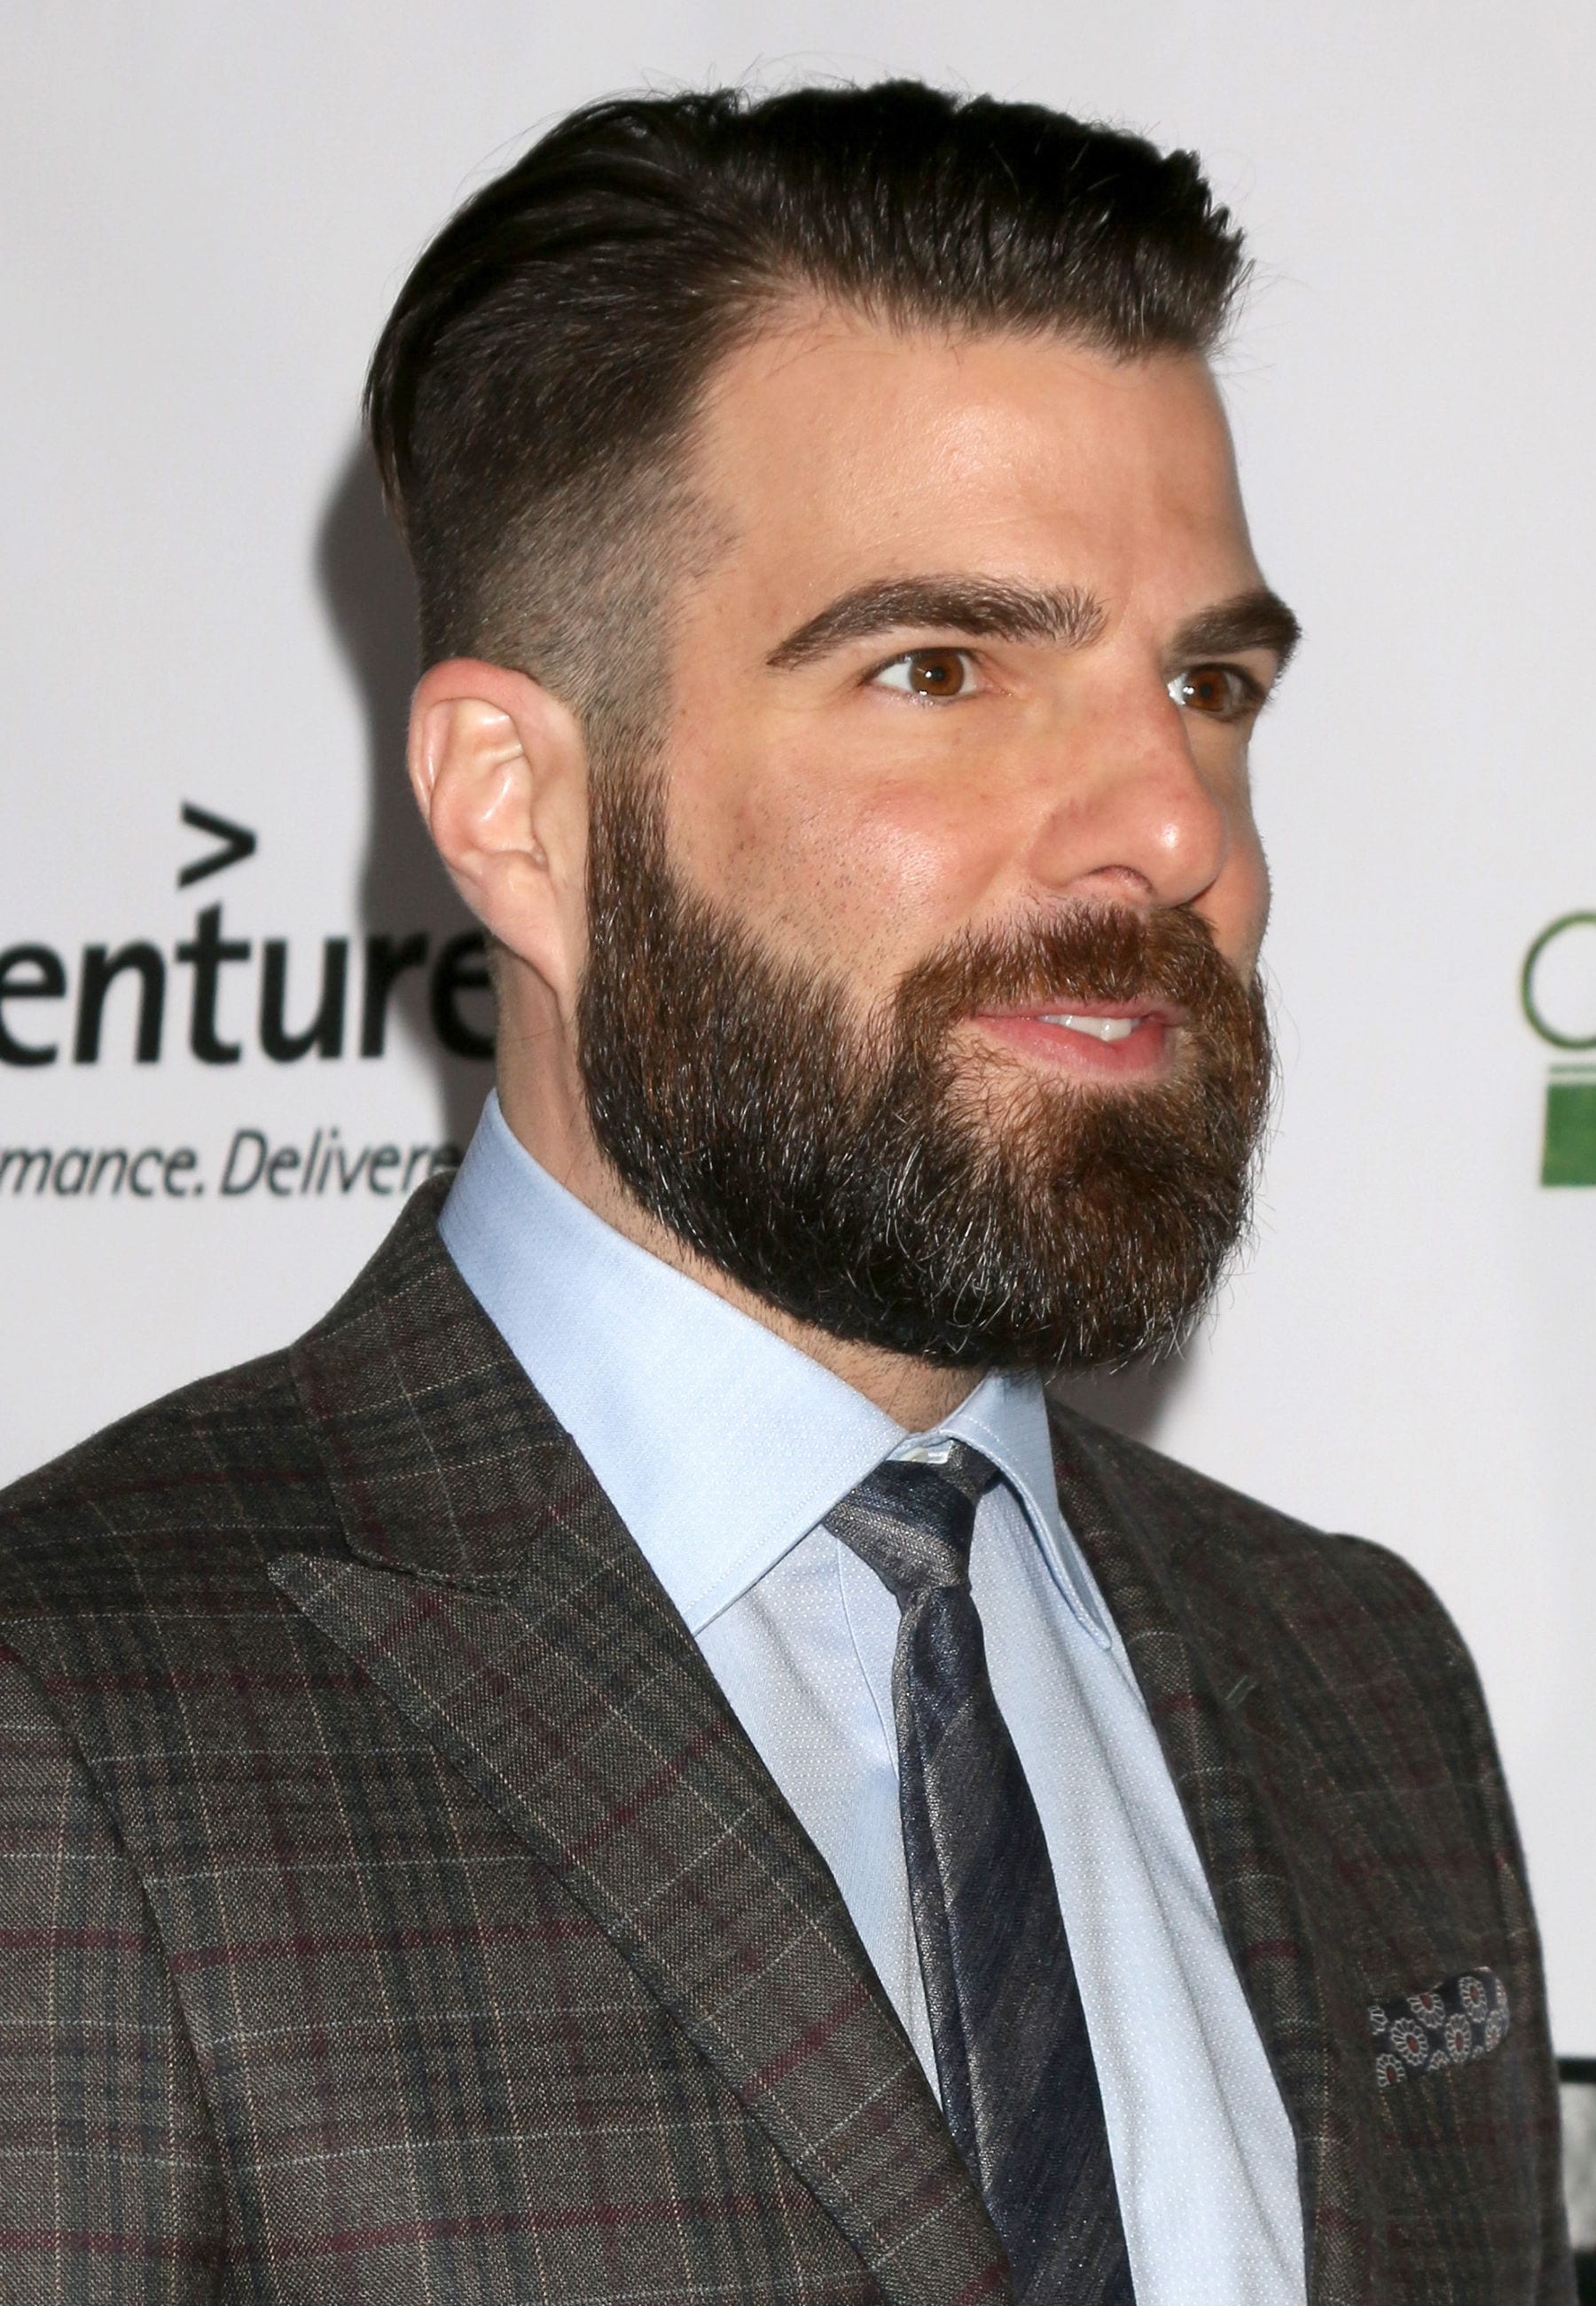 Zachary Quinto slicked back undercut beard profile